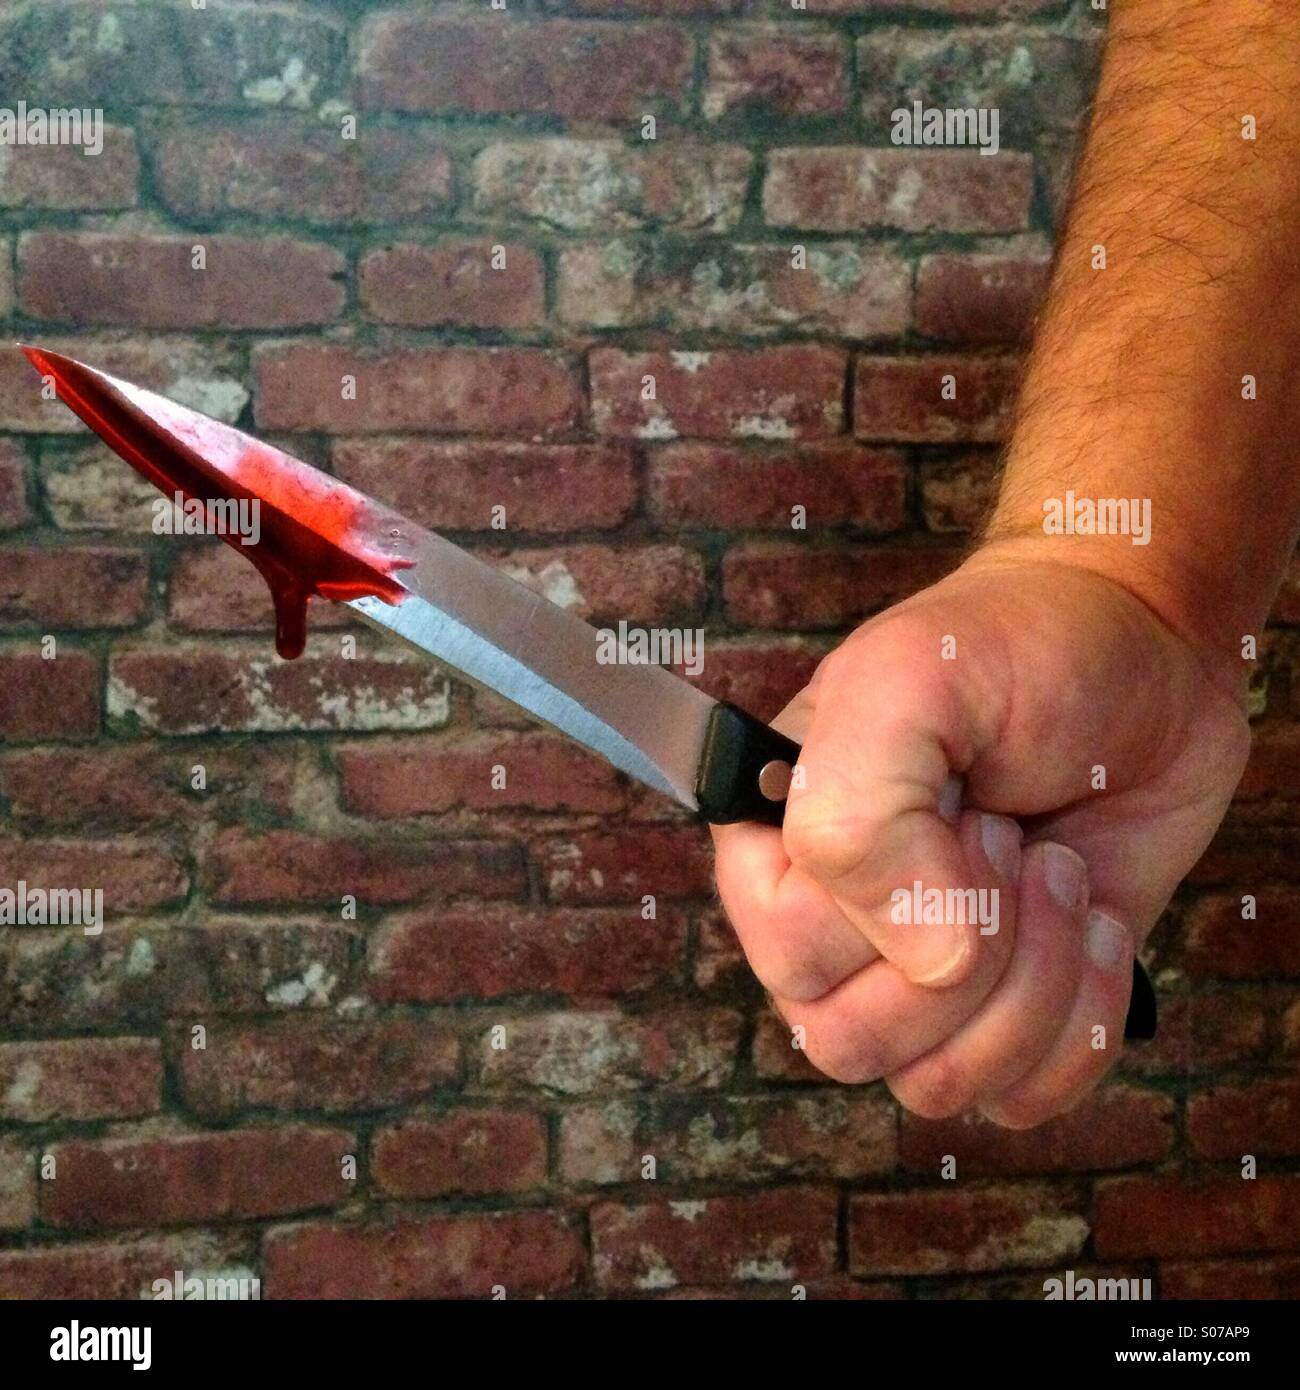 Bloodied knife - Stock Image